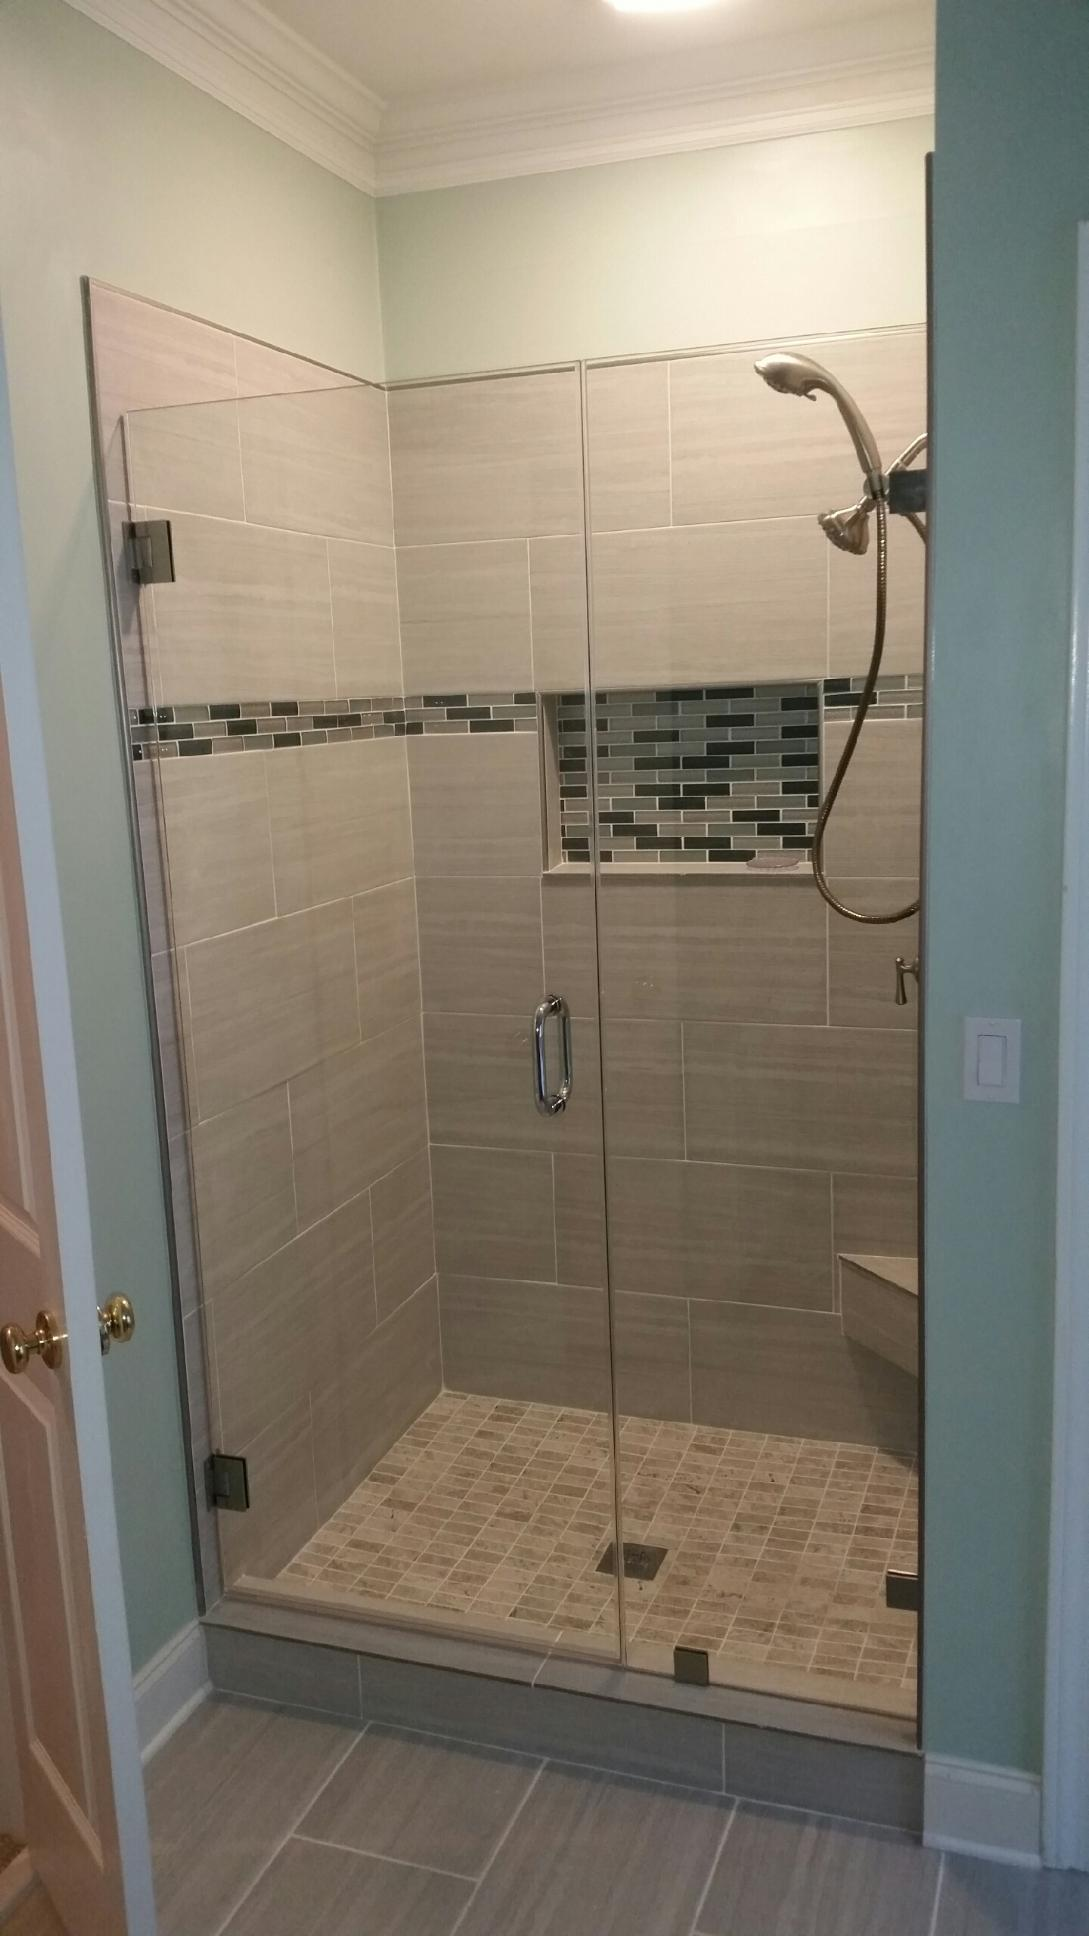 barn shower door bathroom doors custom glass screens enclosures clear frameless bathtub sliding